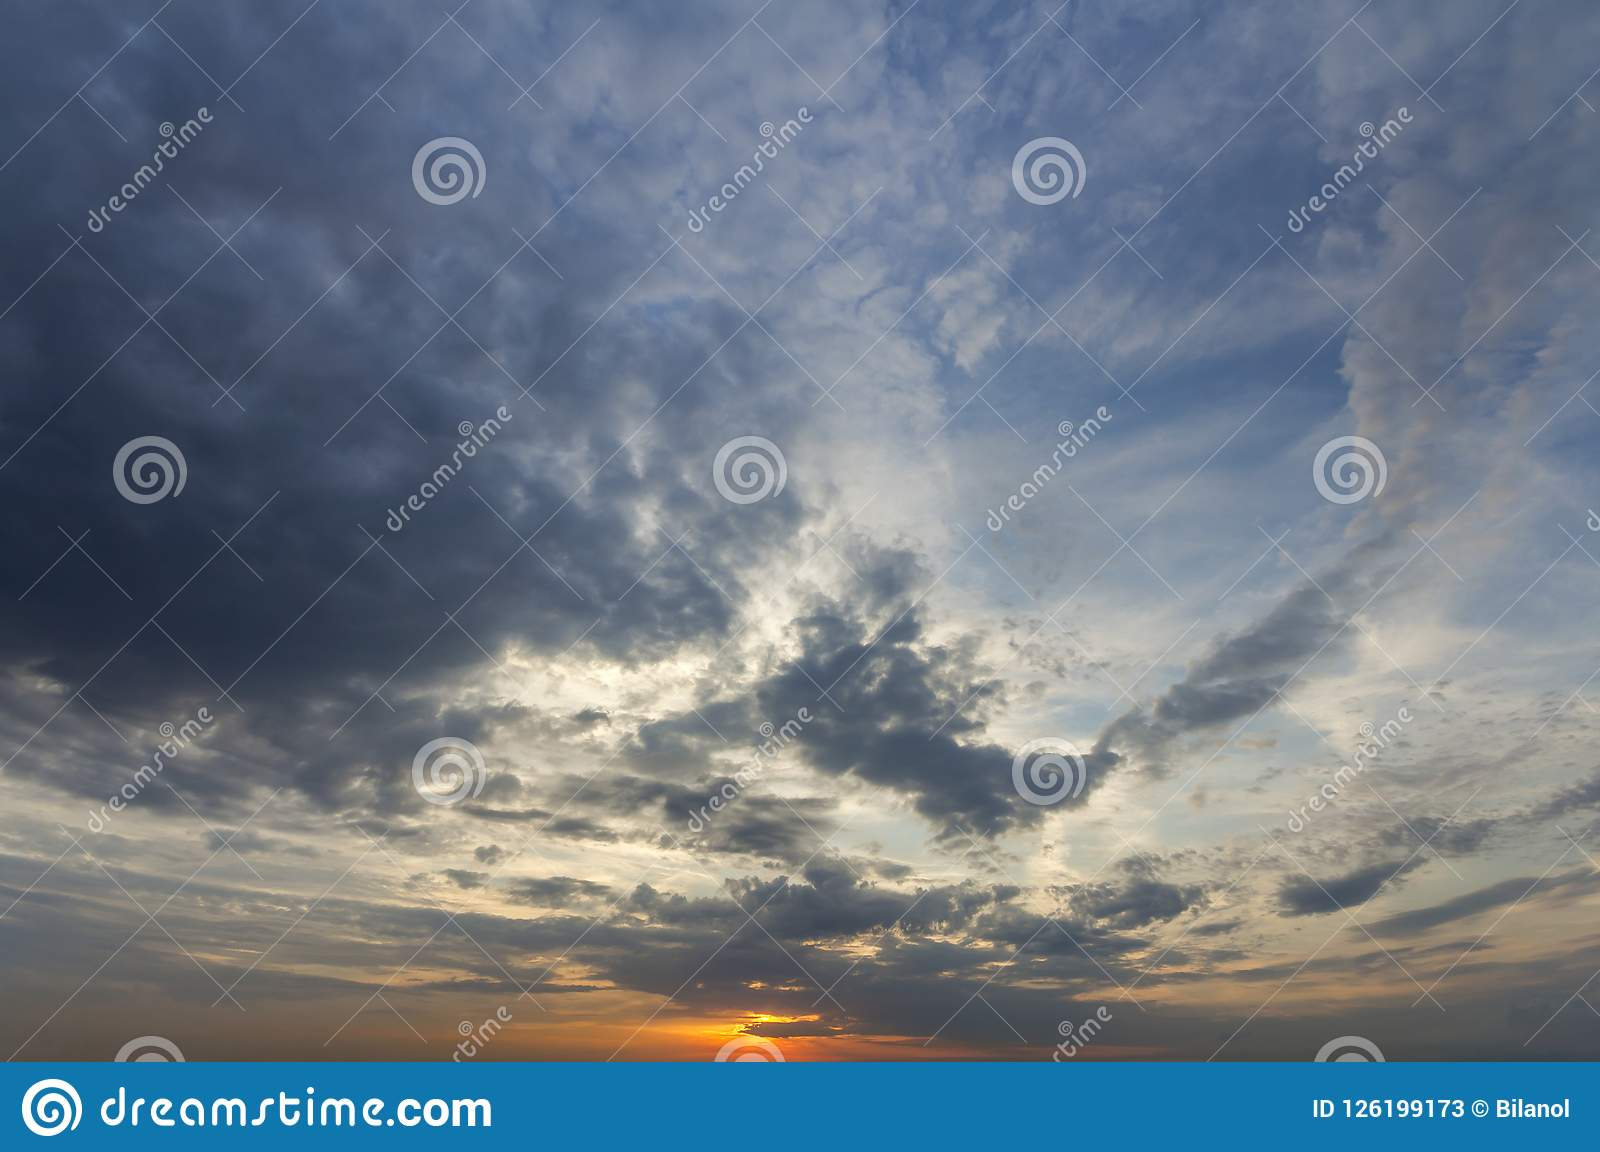 Panorama of sky at sunrise or sunset. Beautiful view of dark blue clouds lit by bright orange yellow sun on clear sky. Beauty and